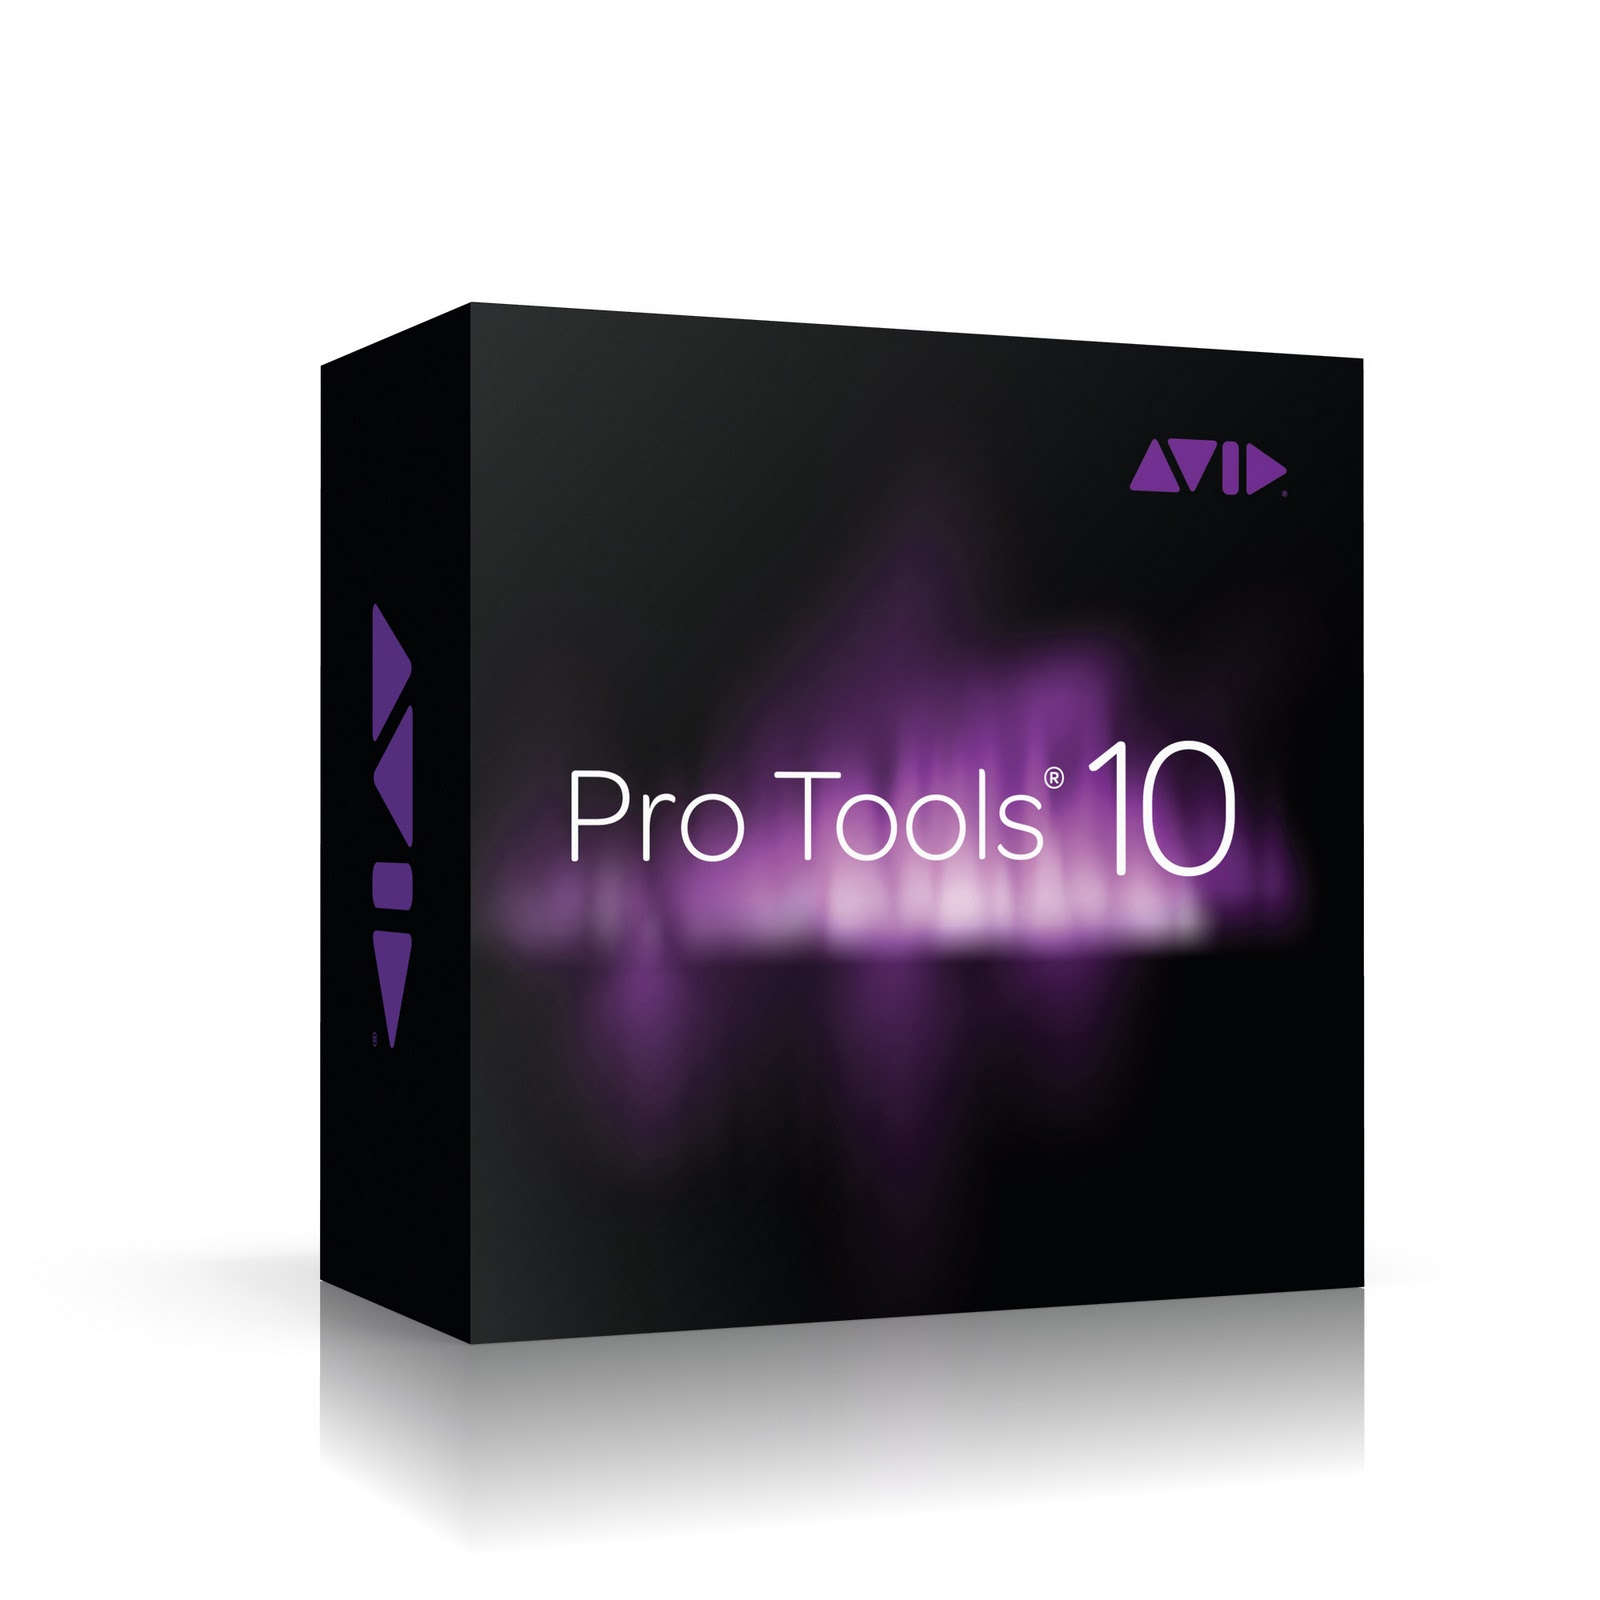 Eleven Rack: 30 Day Free Trial of Pro Tools 10